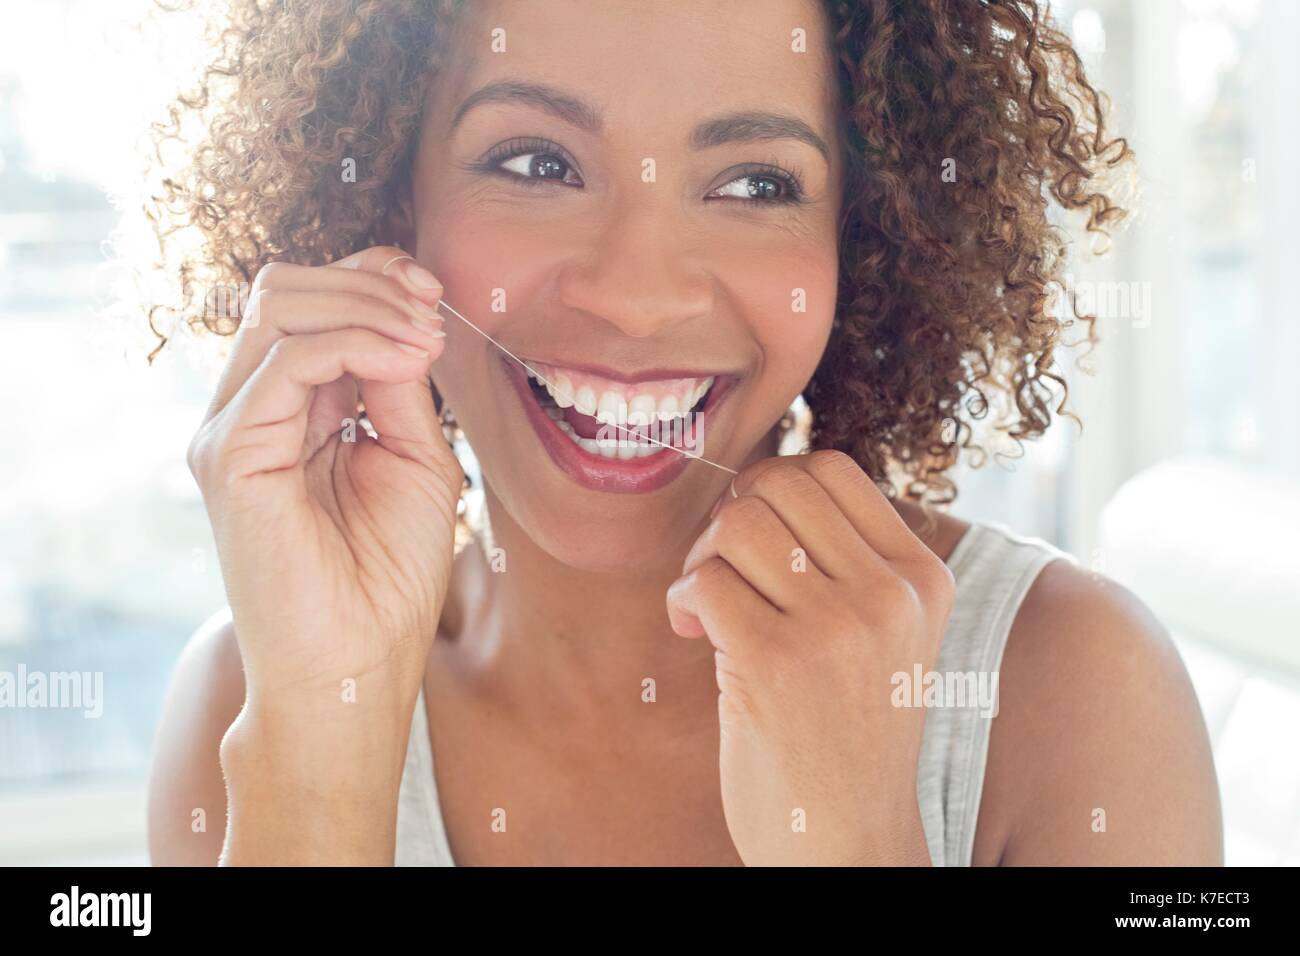 Portrait of mid adult woman flossing teeth. - Stock Image